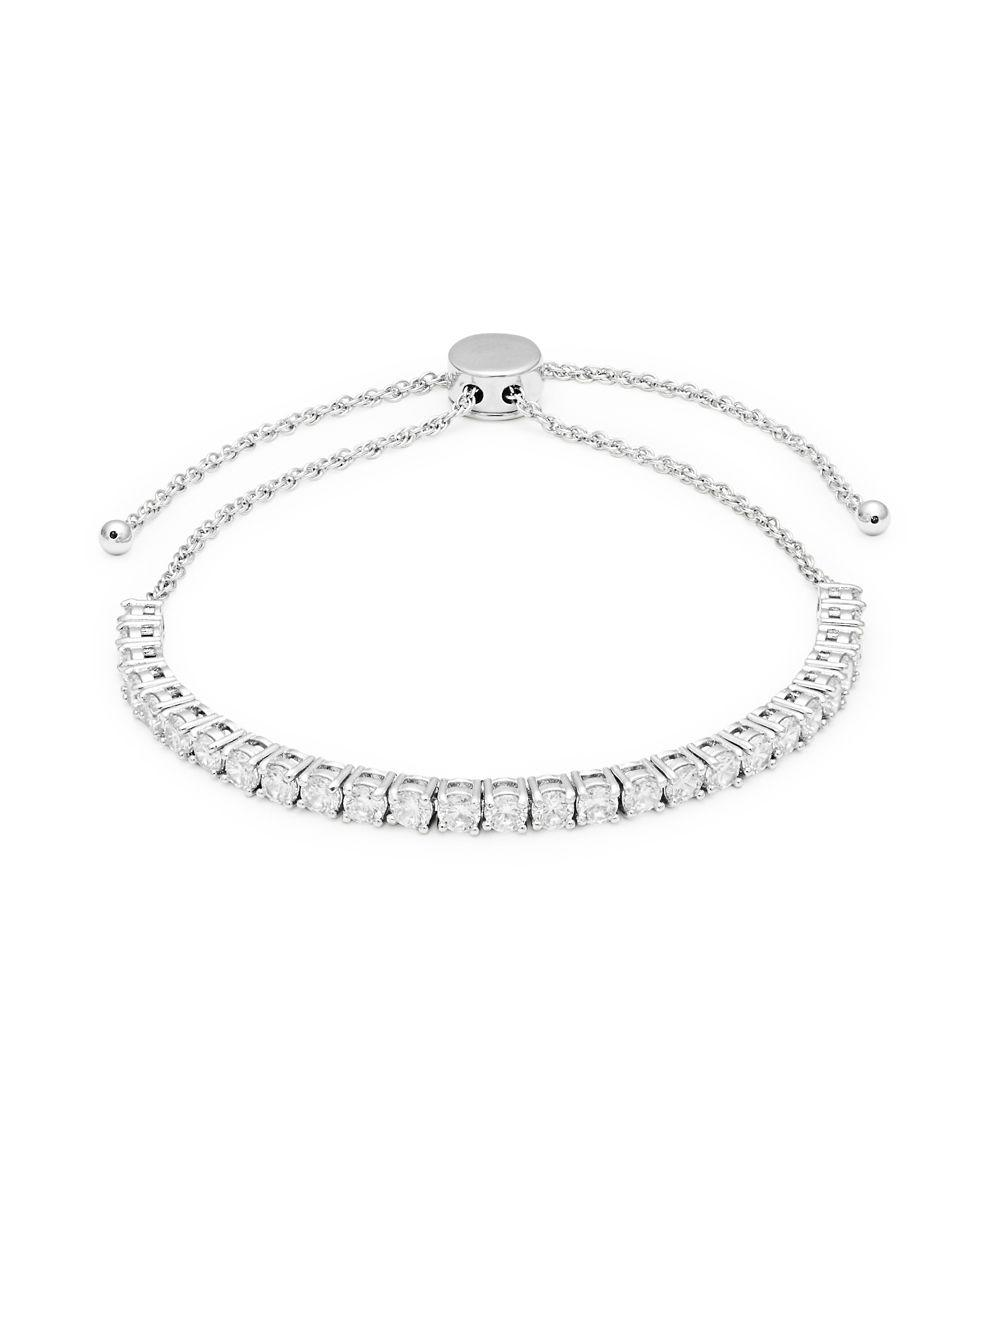 Kate Spade Women S Metallic Sterling Silver Crystal Tennis Bracelet